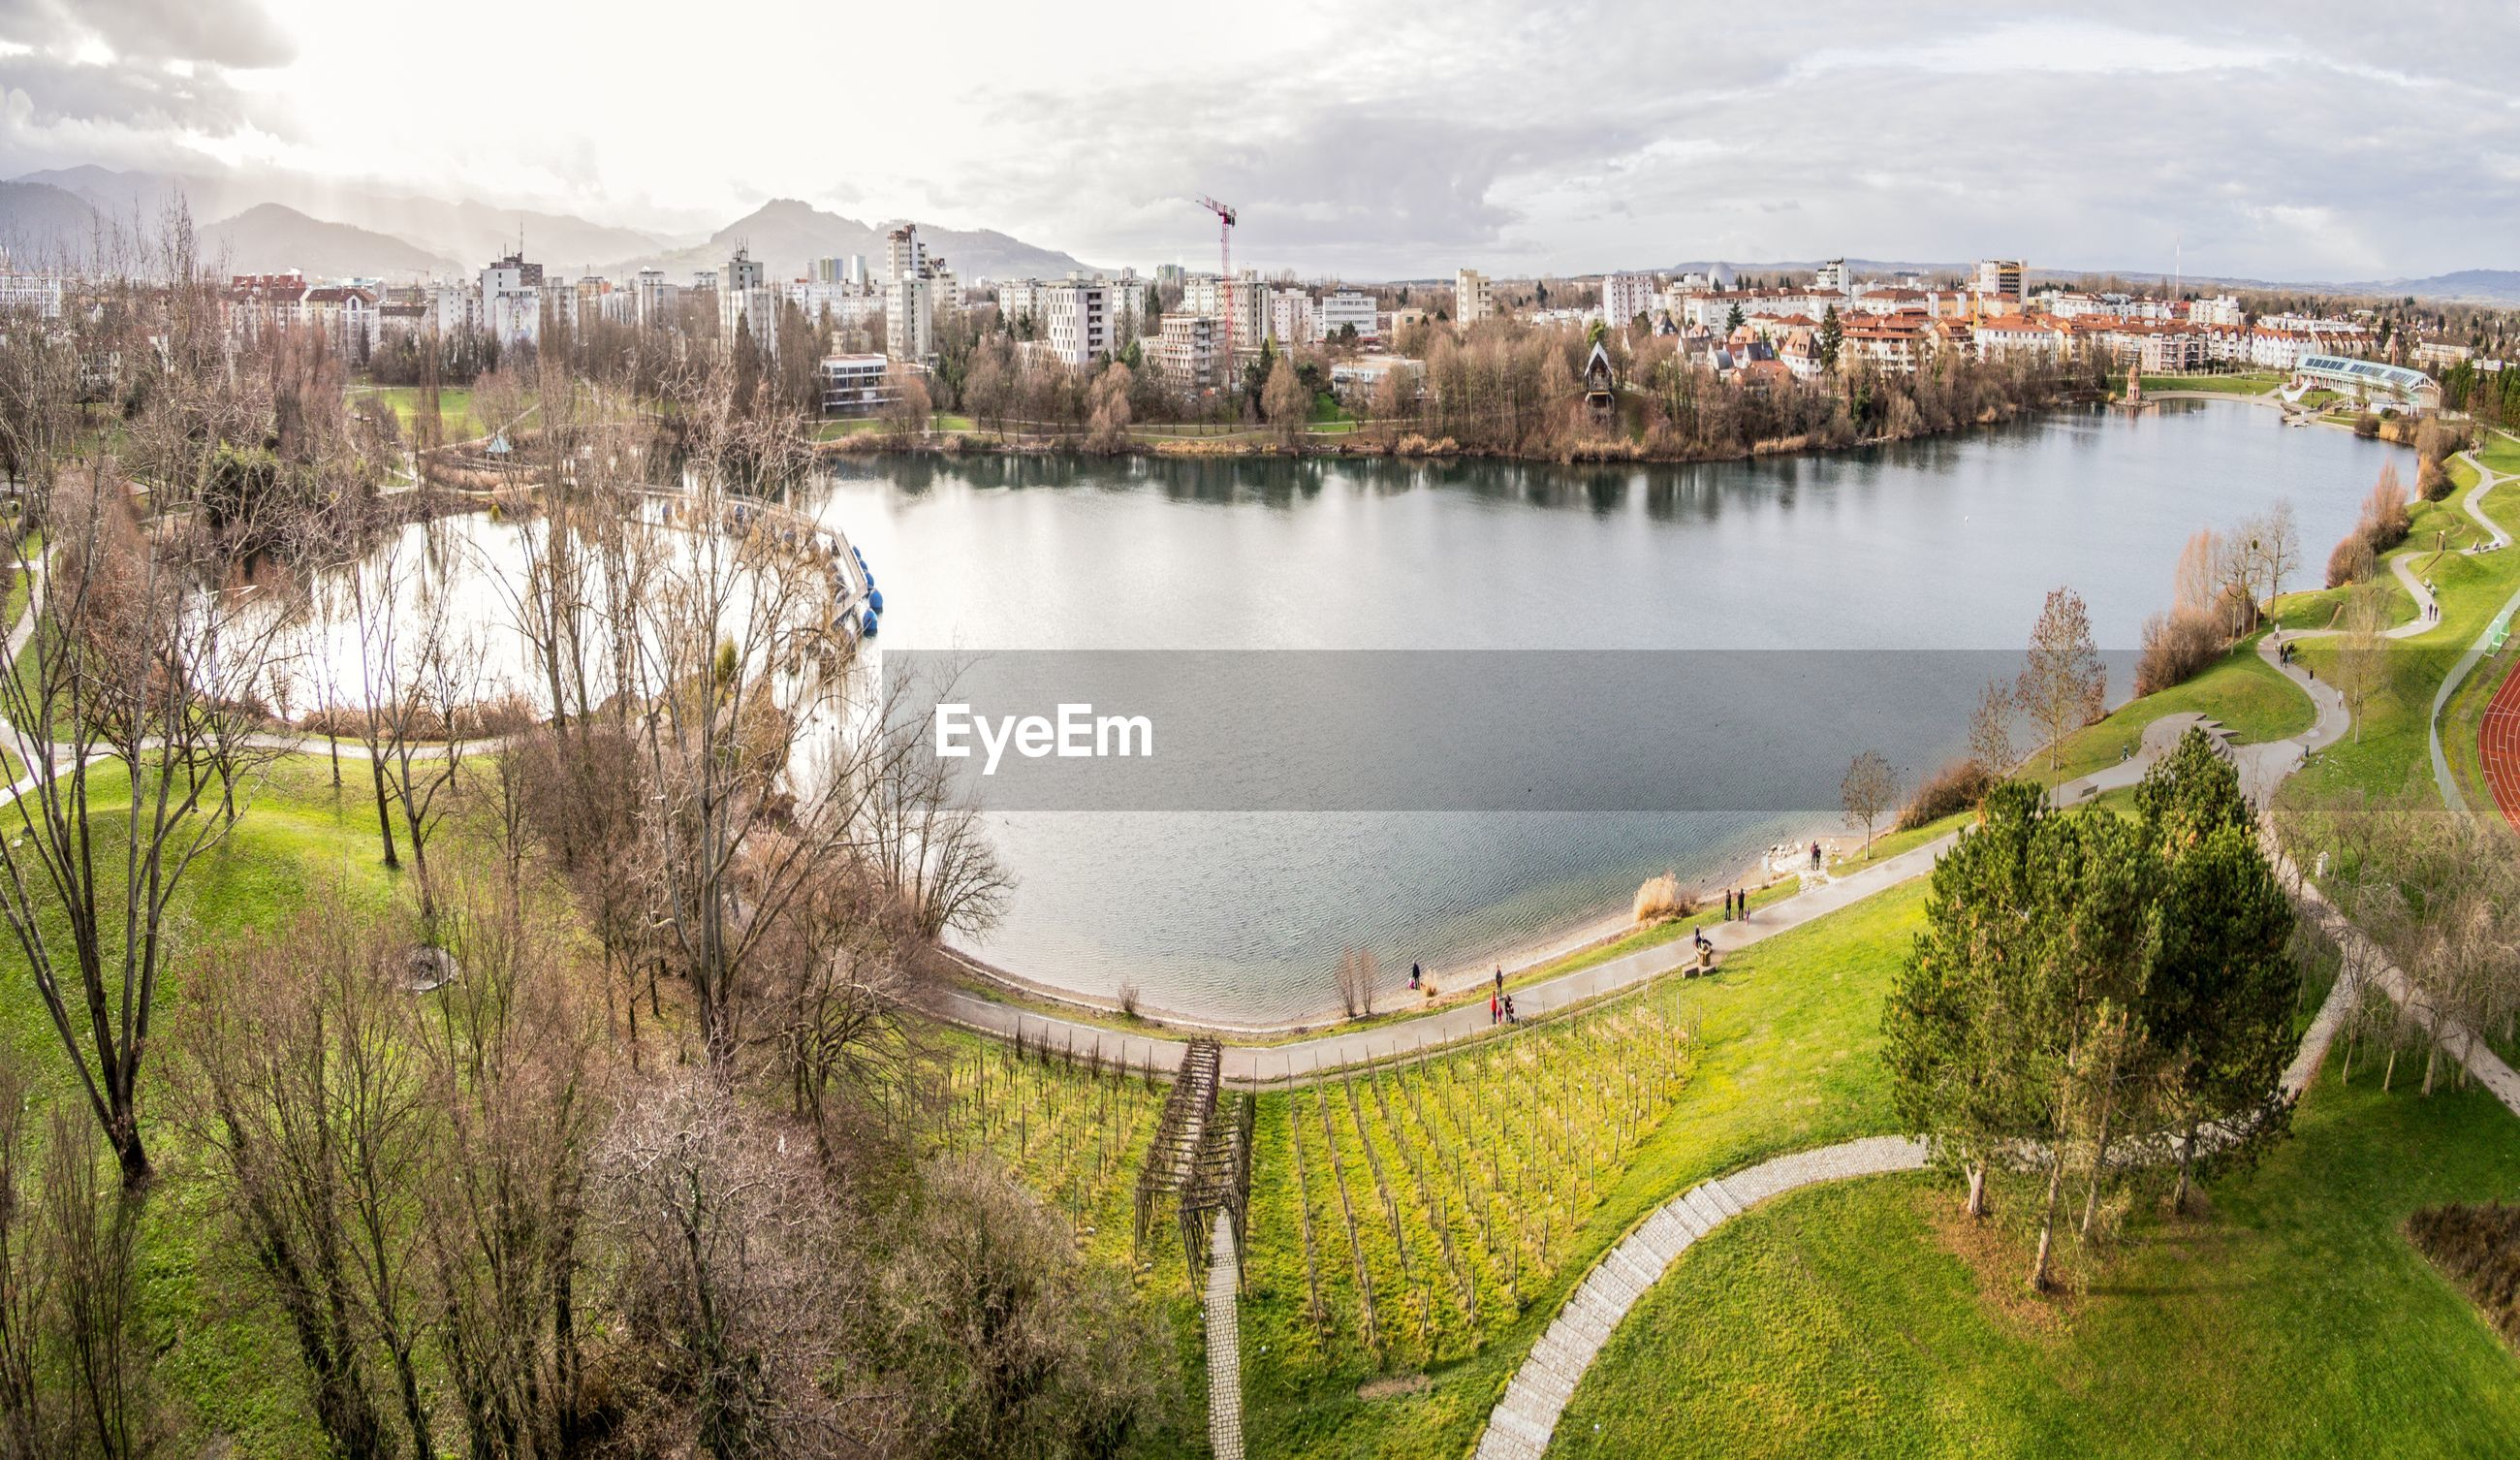 PANORAMIC VIEW OF LAKE AND LANDSCAPE AGAINST SKY